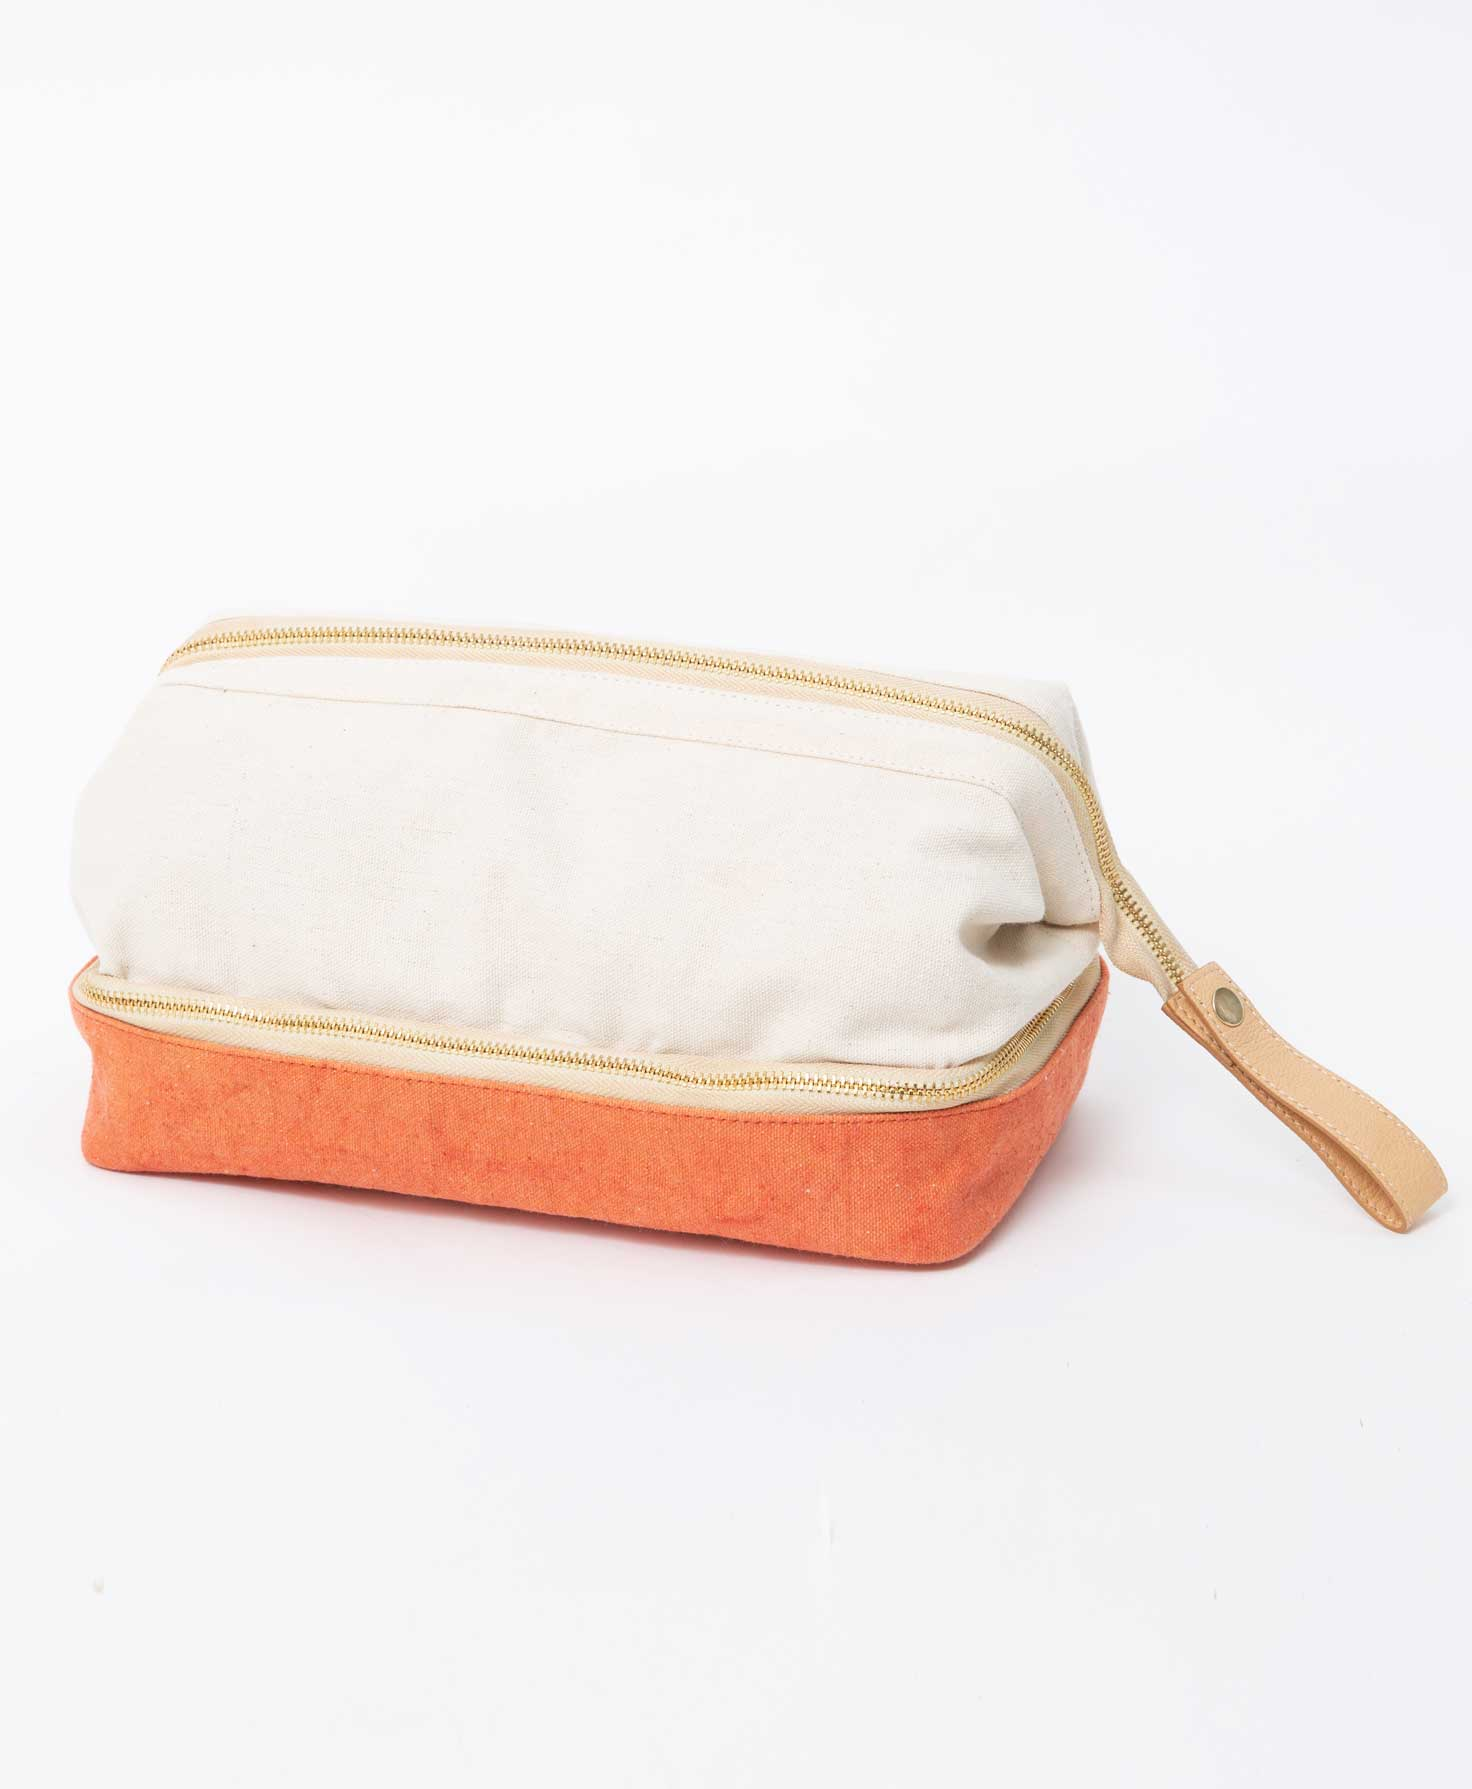 The bottom compartment of the Voyage Dopp Kit is unzipped, showing the interior of the compartment. It is lined with a smooth beige polyester lining that can easily be wiped clean. There are no interior pockets in the bottom compartment.